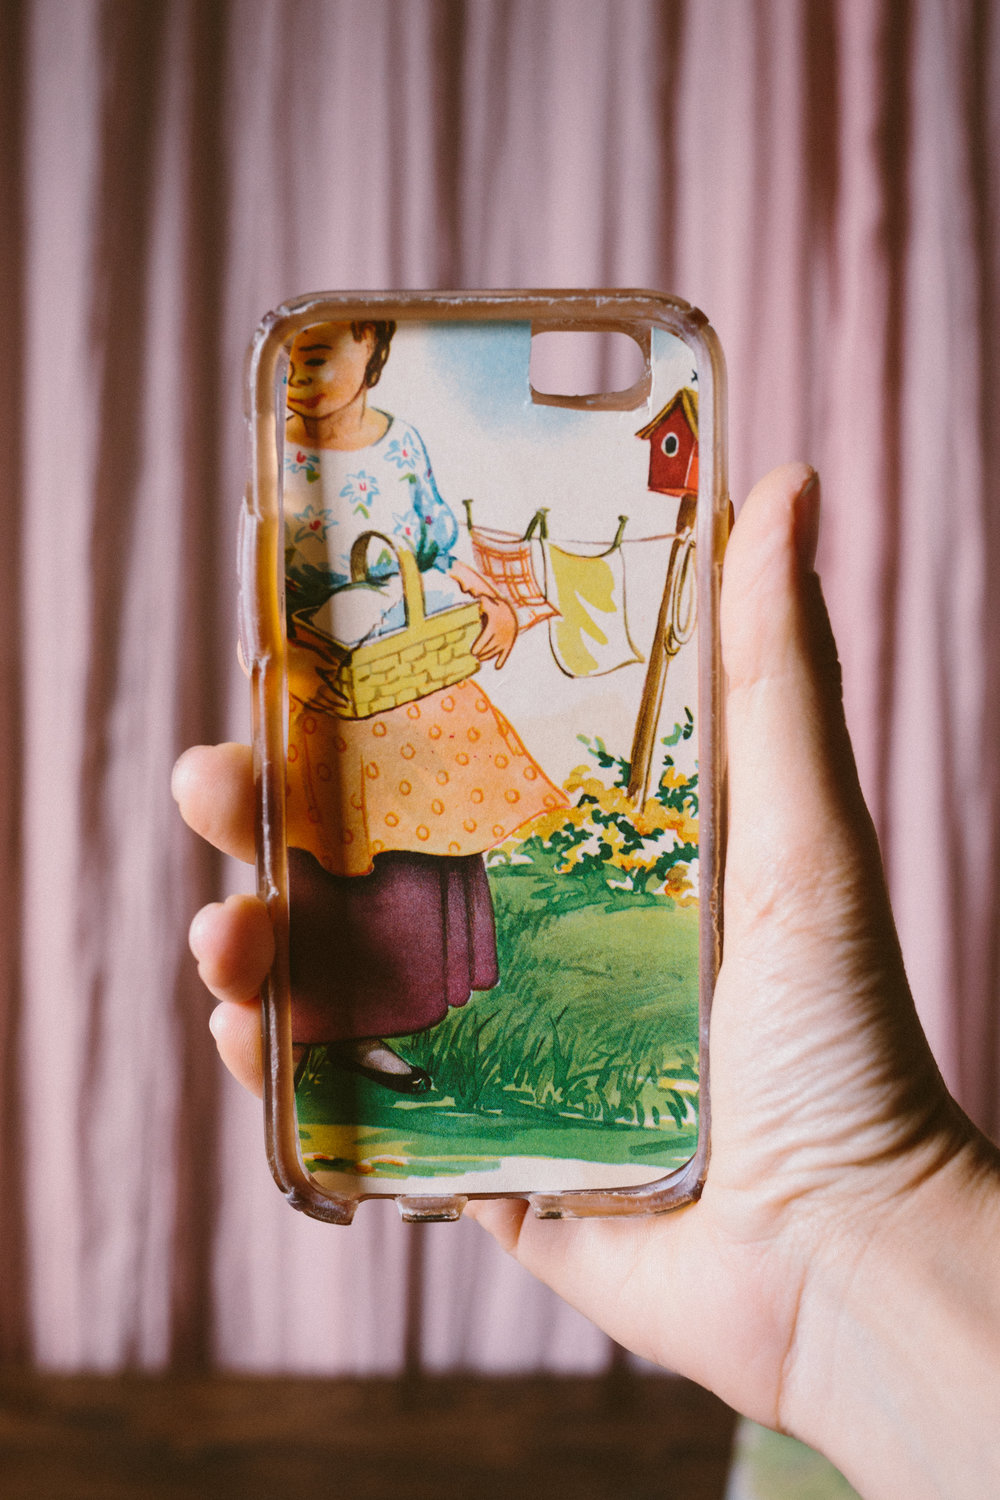 4. Once you've cut your image to the correct size, carefully place it inside your iphone and make sure everything lines up. Once it fits to your liking, wedge your iphone into it's case and BADA BING BADA BOOM. You've got yourself a trendy, fun, new, personalized iphone case!